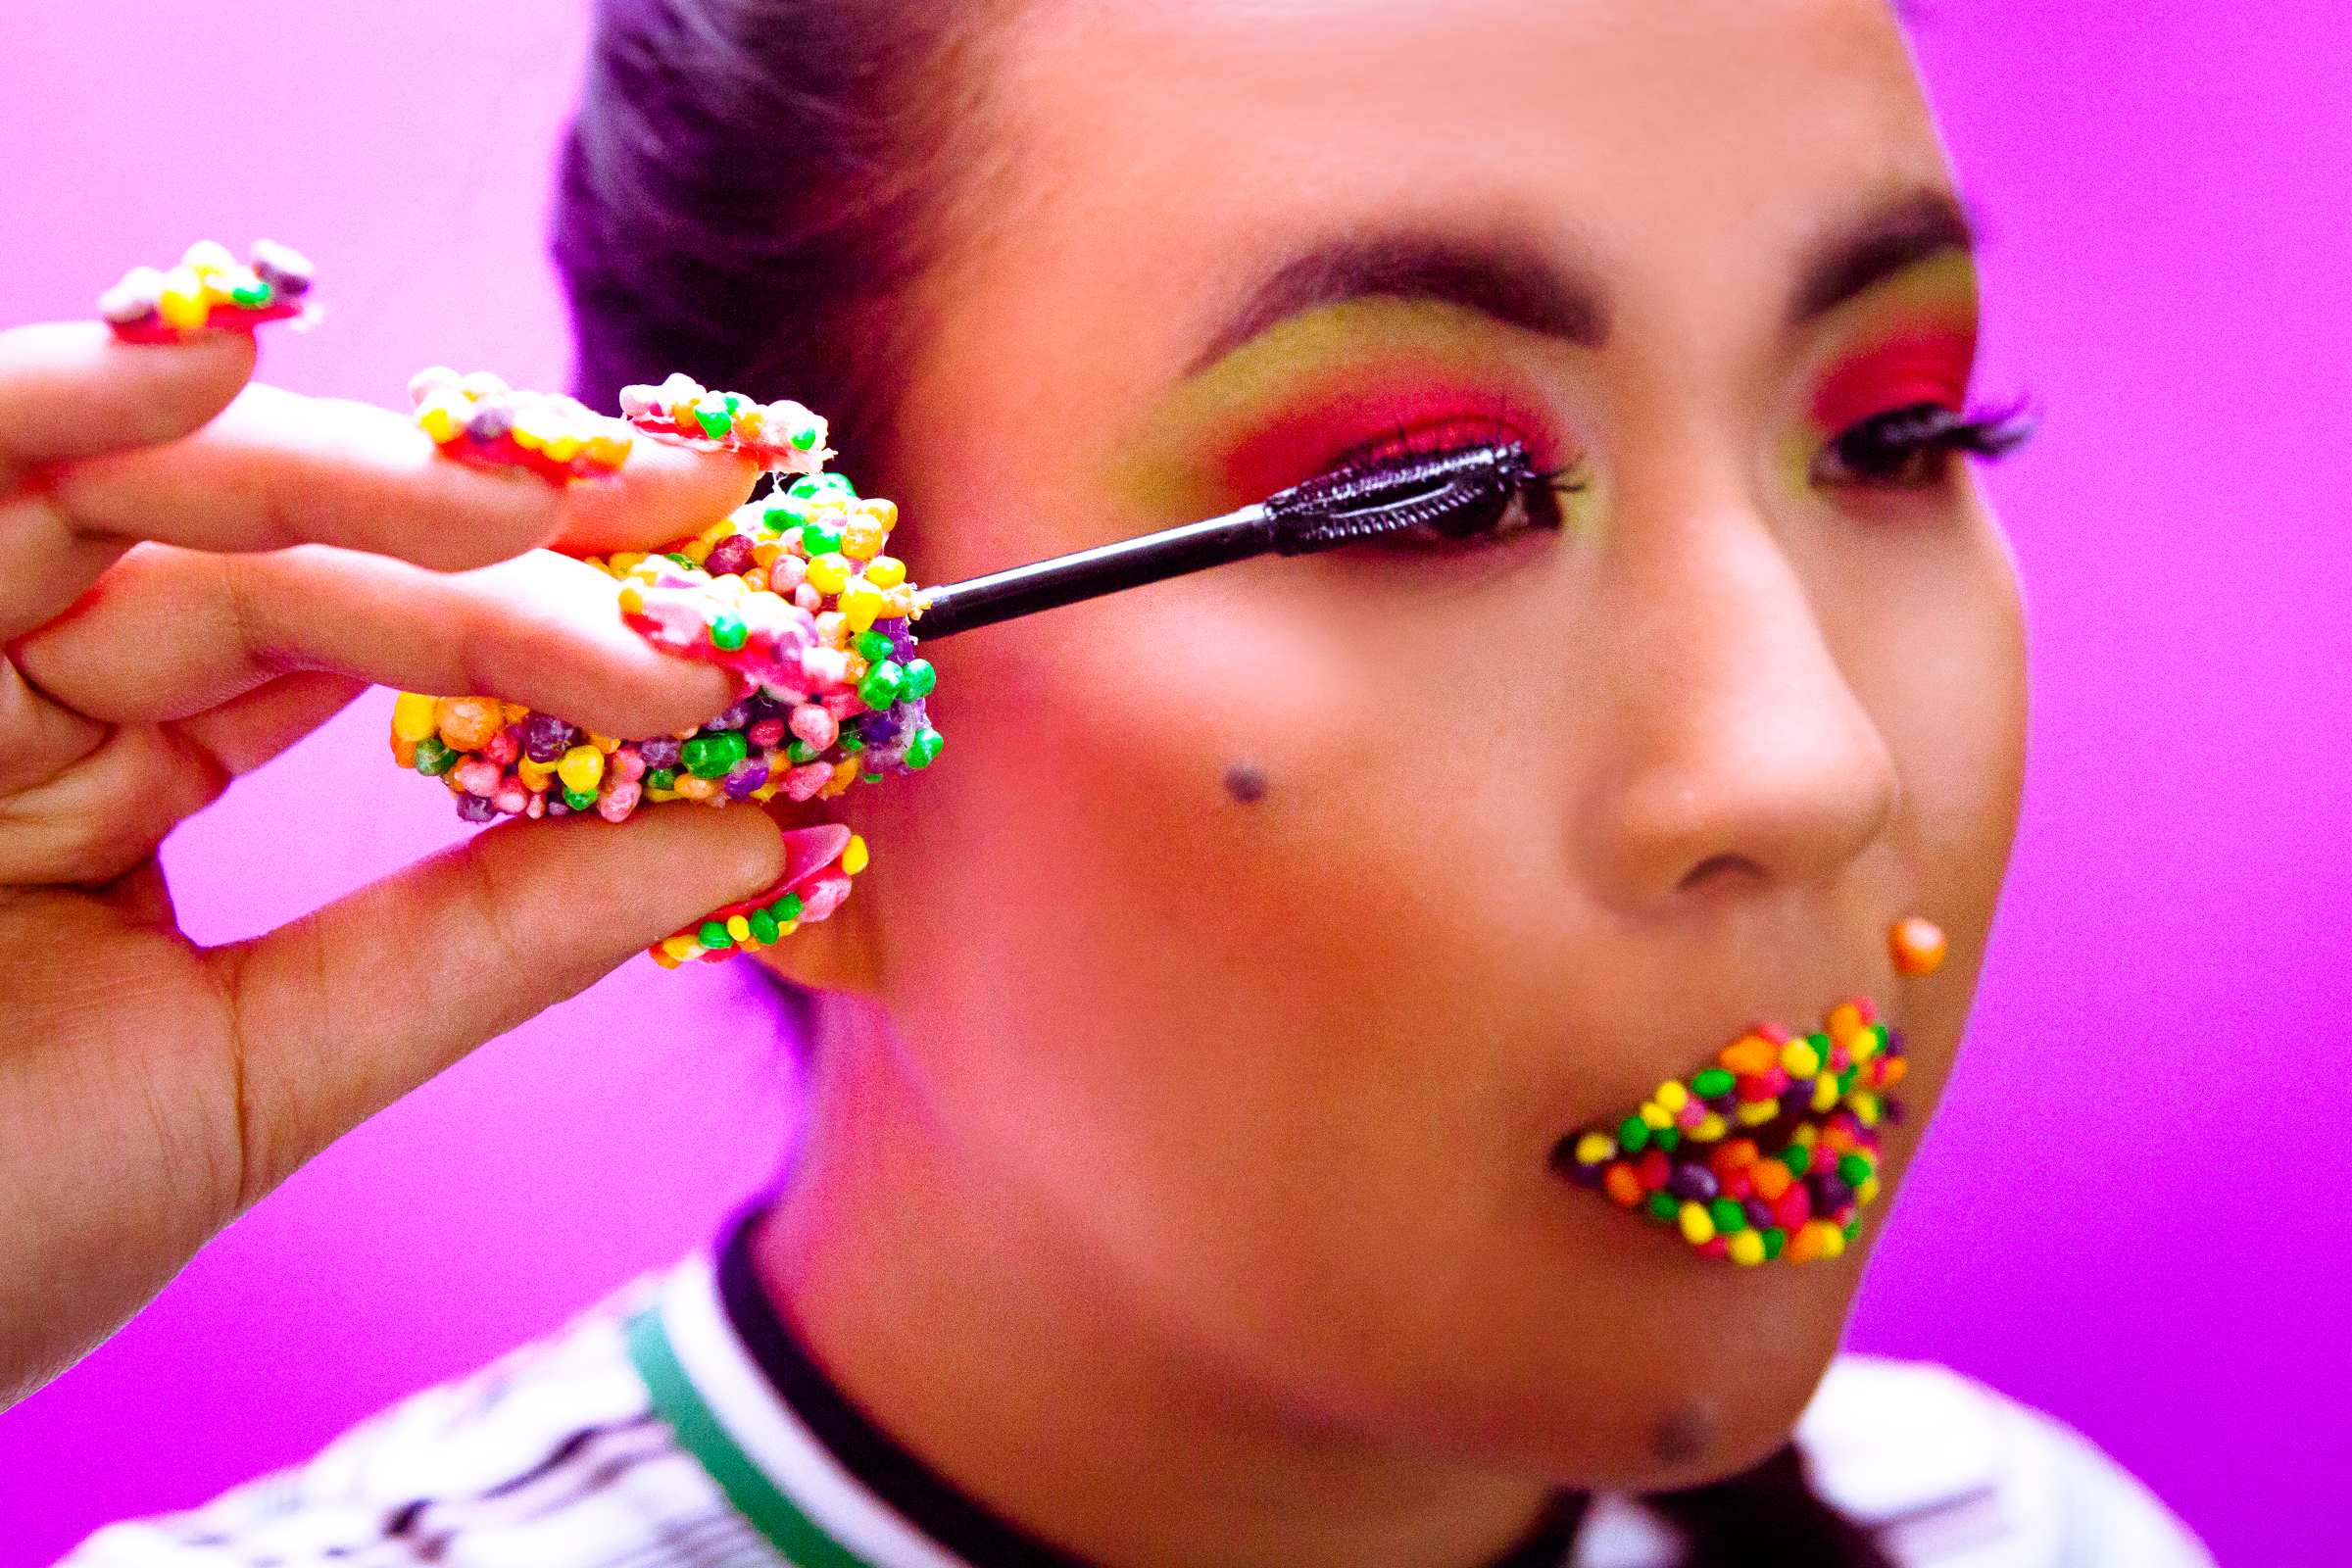 nerds_make_up-5.jpg